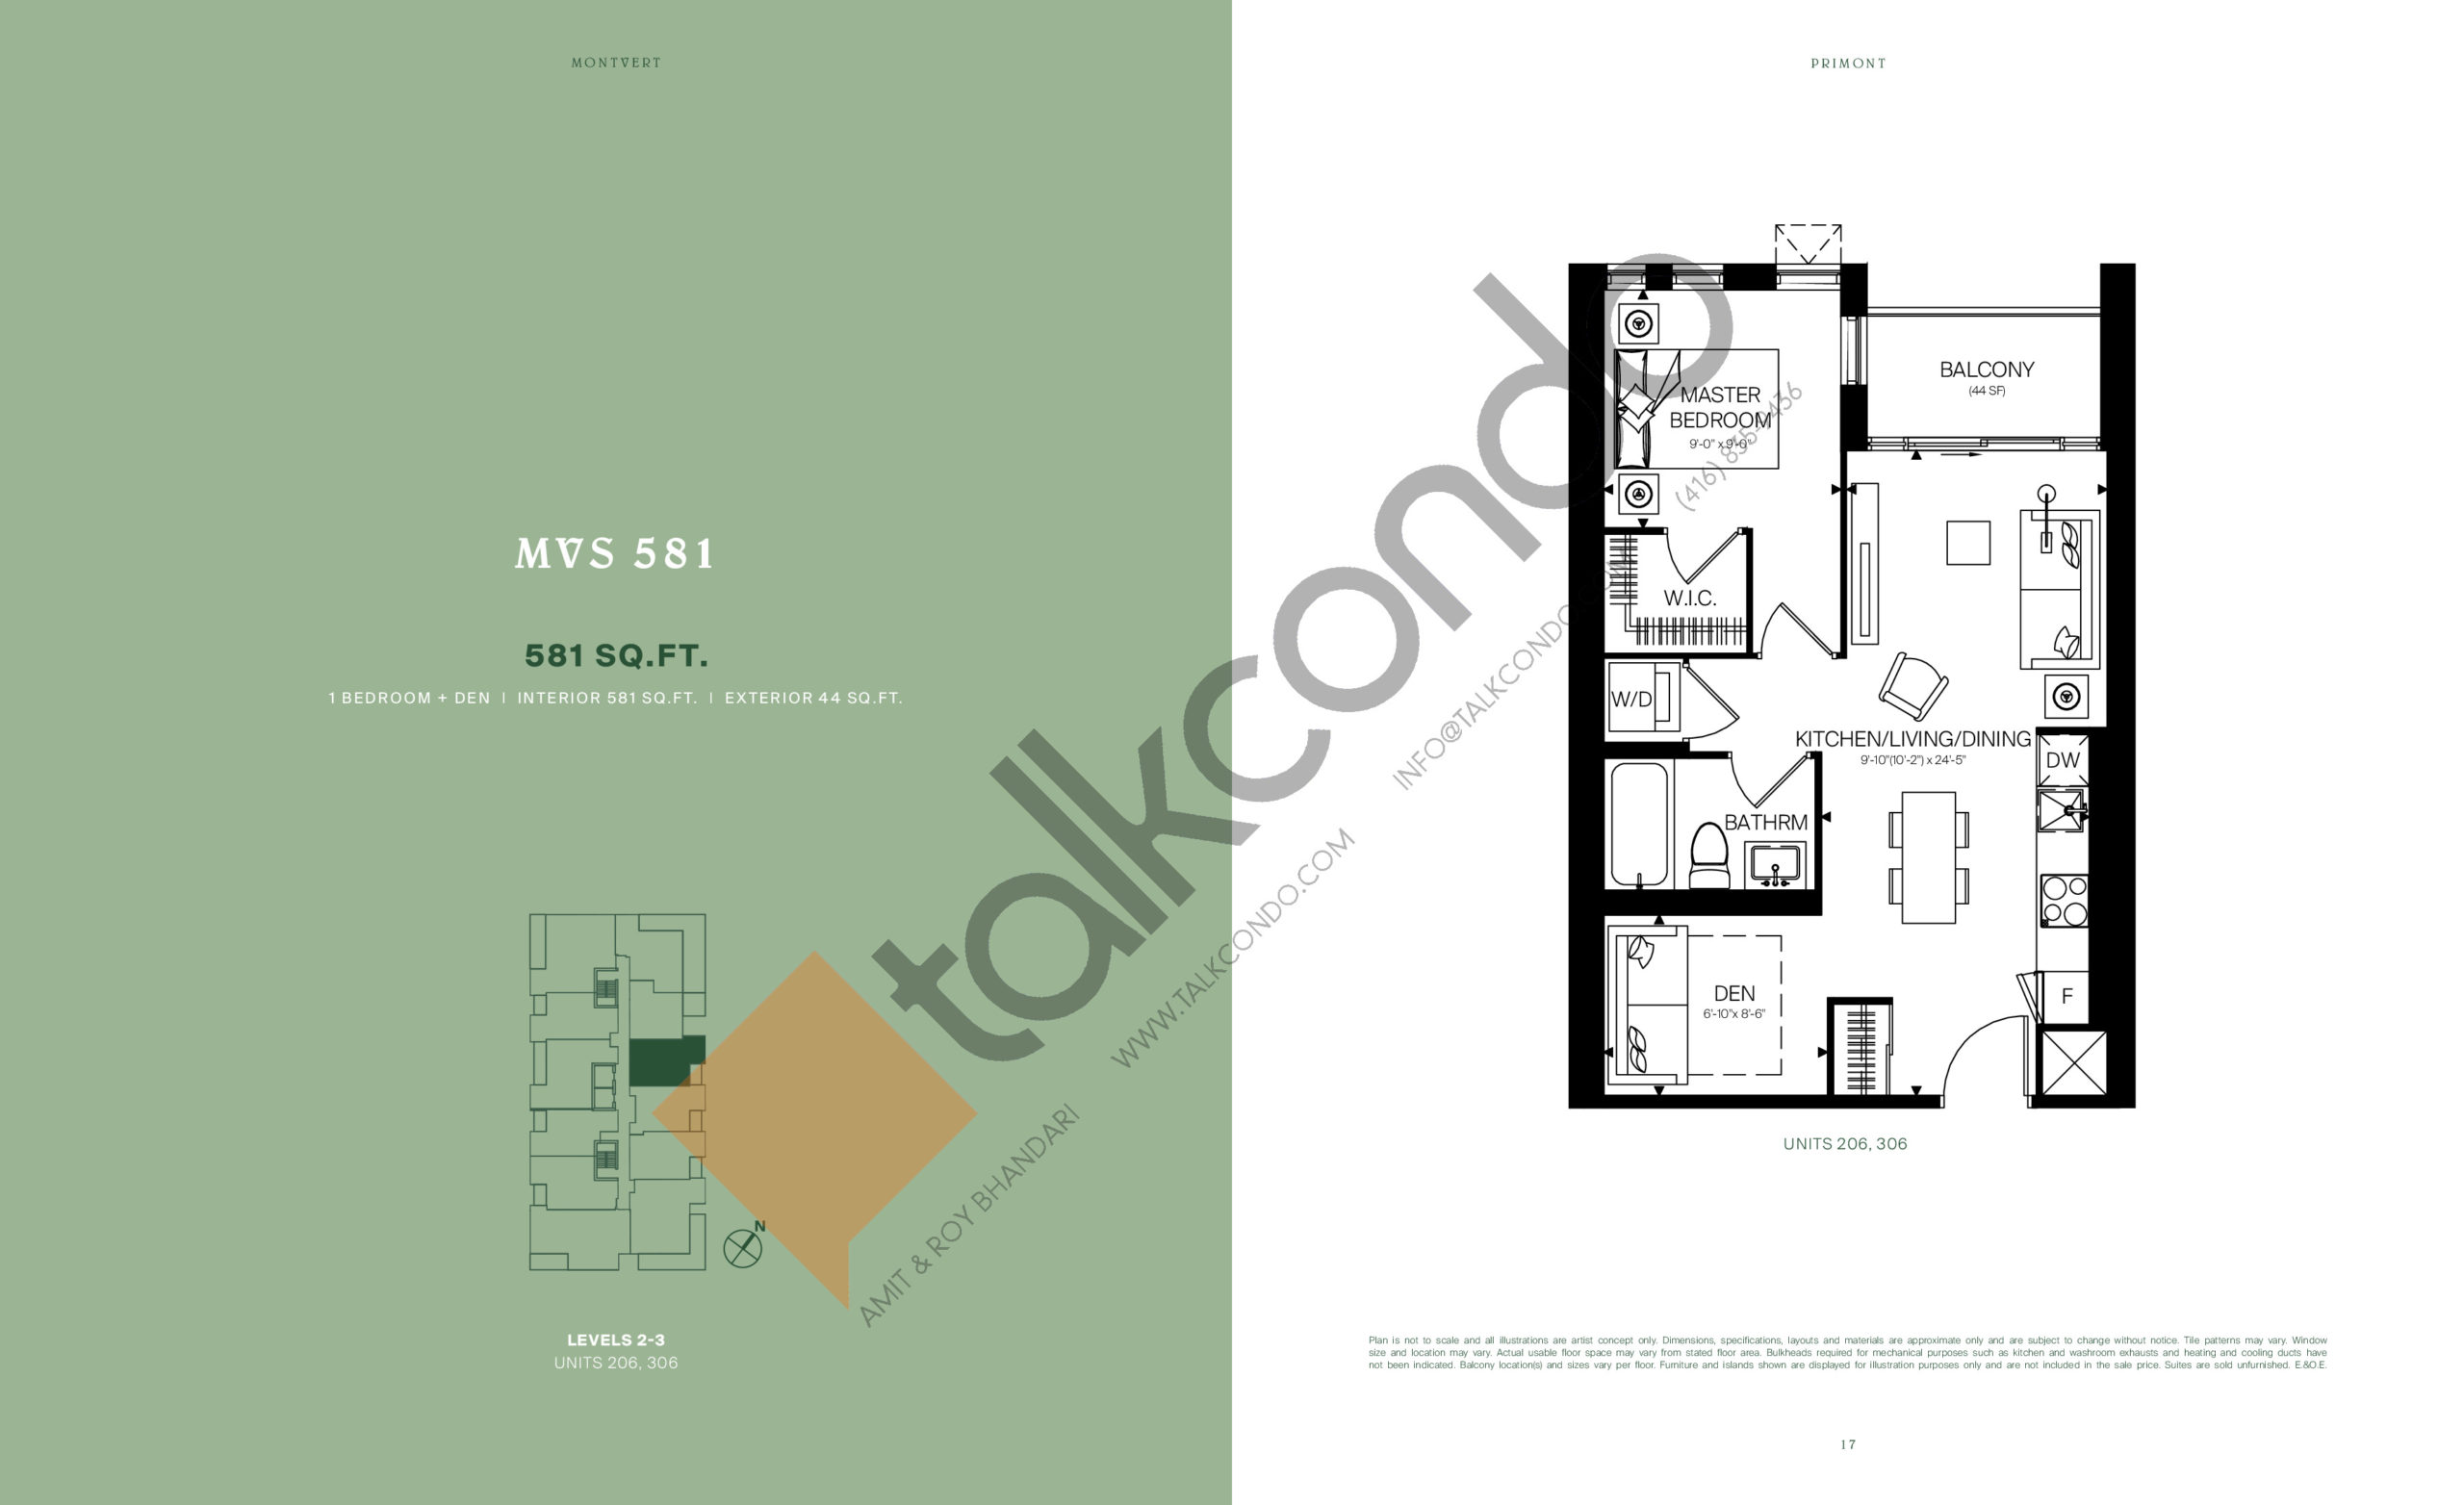 MVS 581 Floor Plan at MontVert Condos - 581 sq.ft